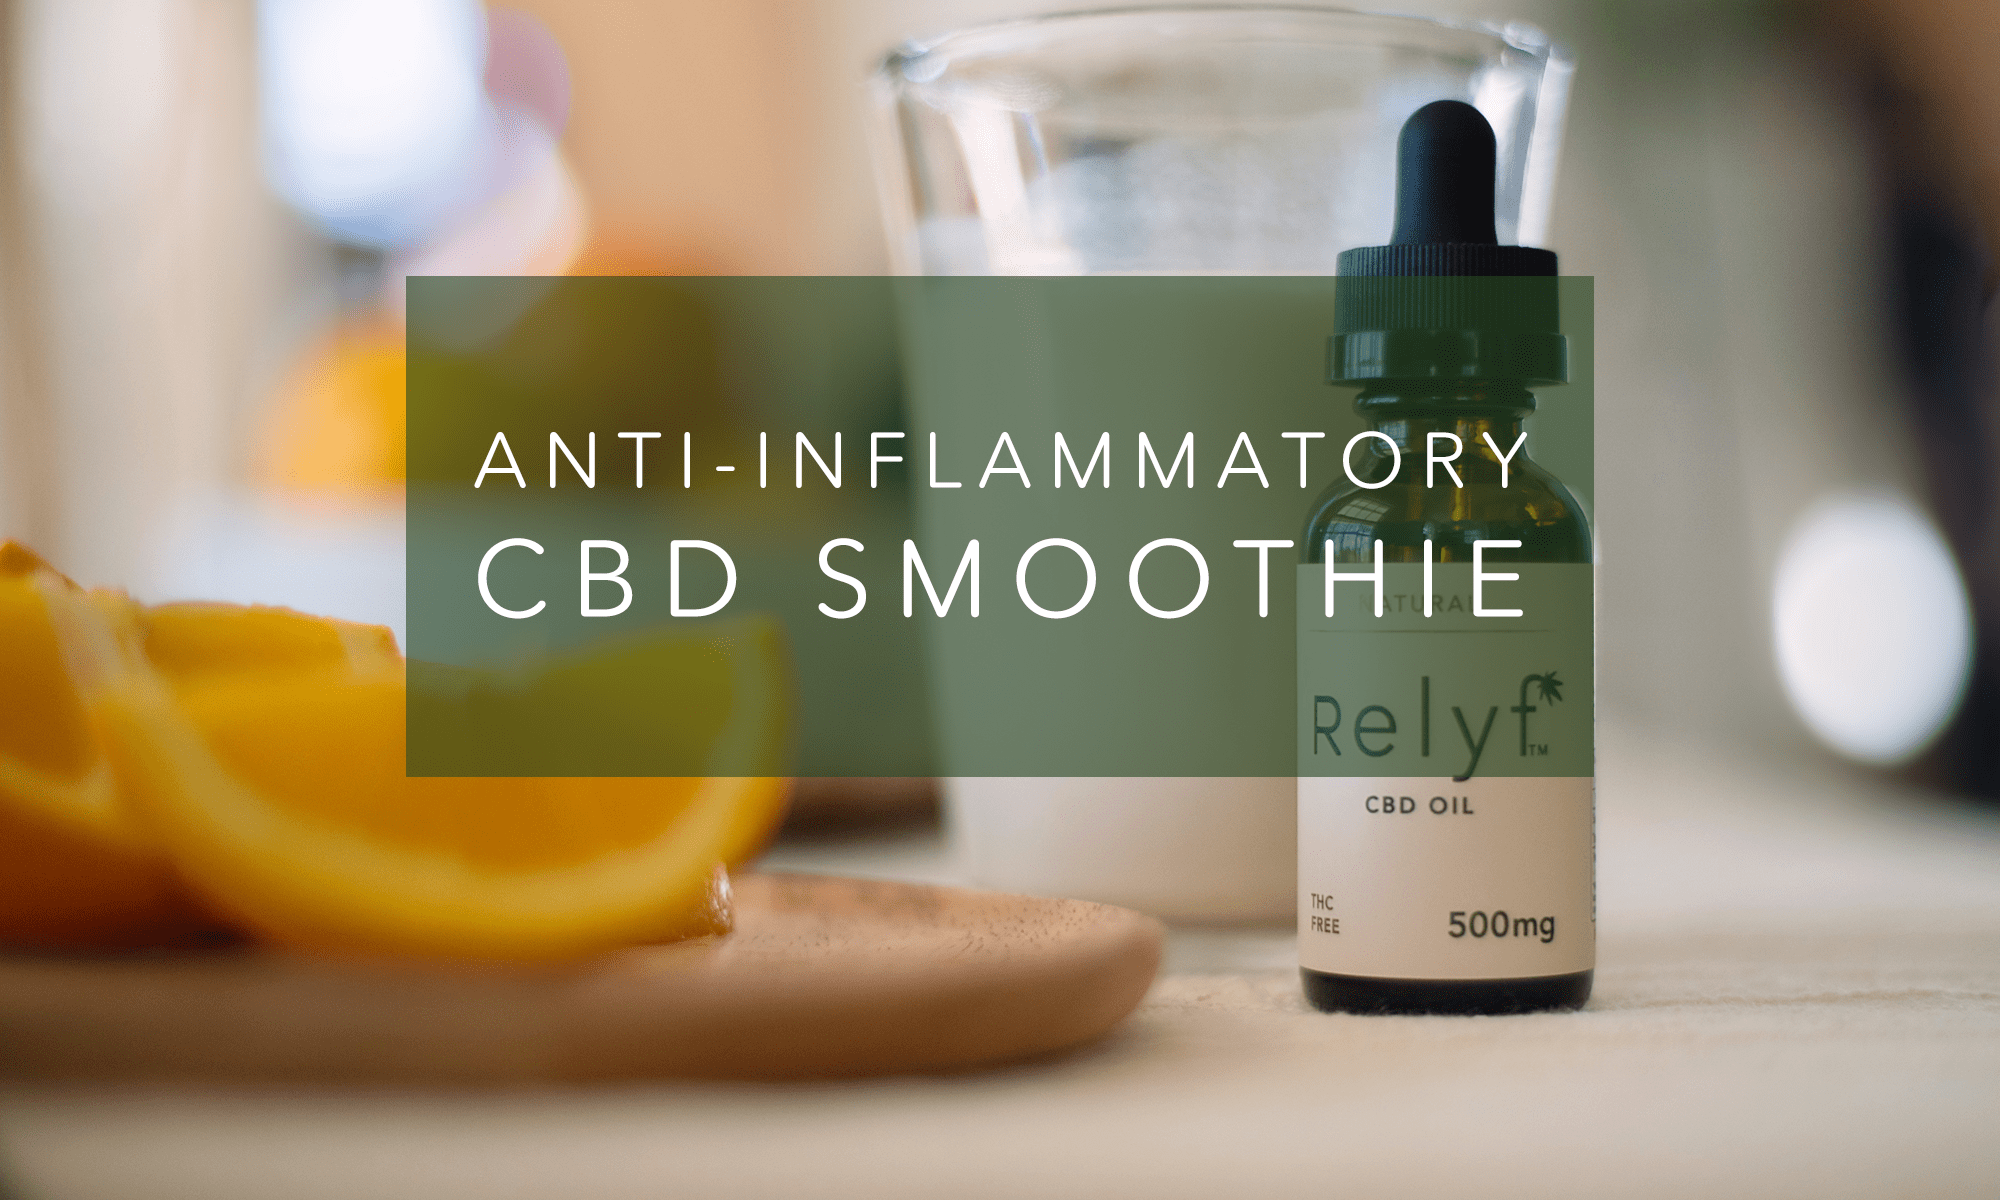 How to Make an Anti-Inflammatory CBD Breakfast Smoothie